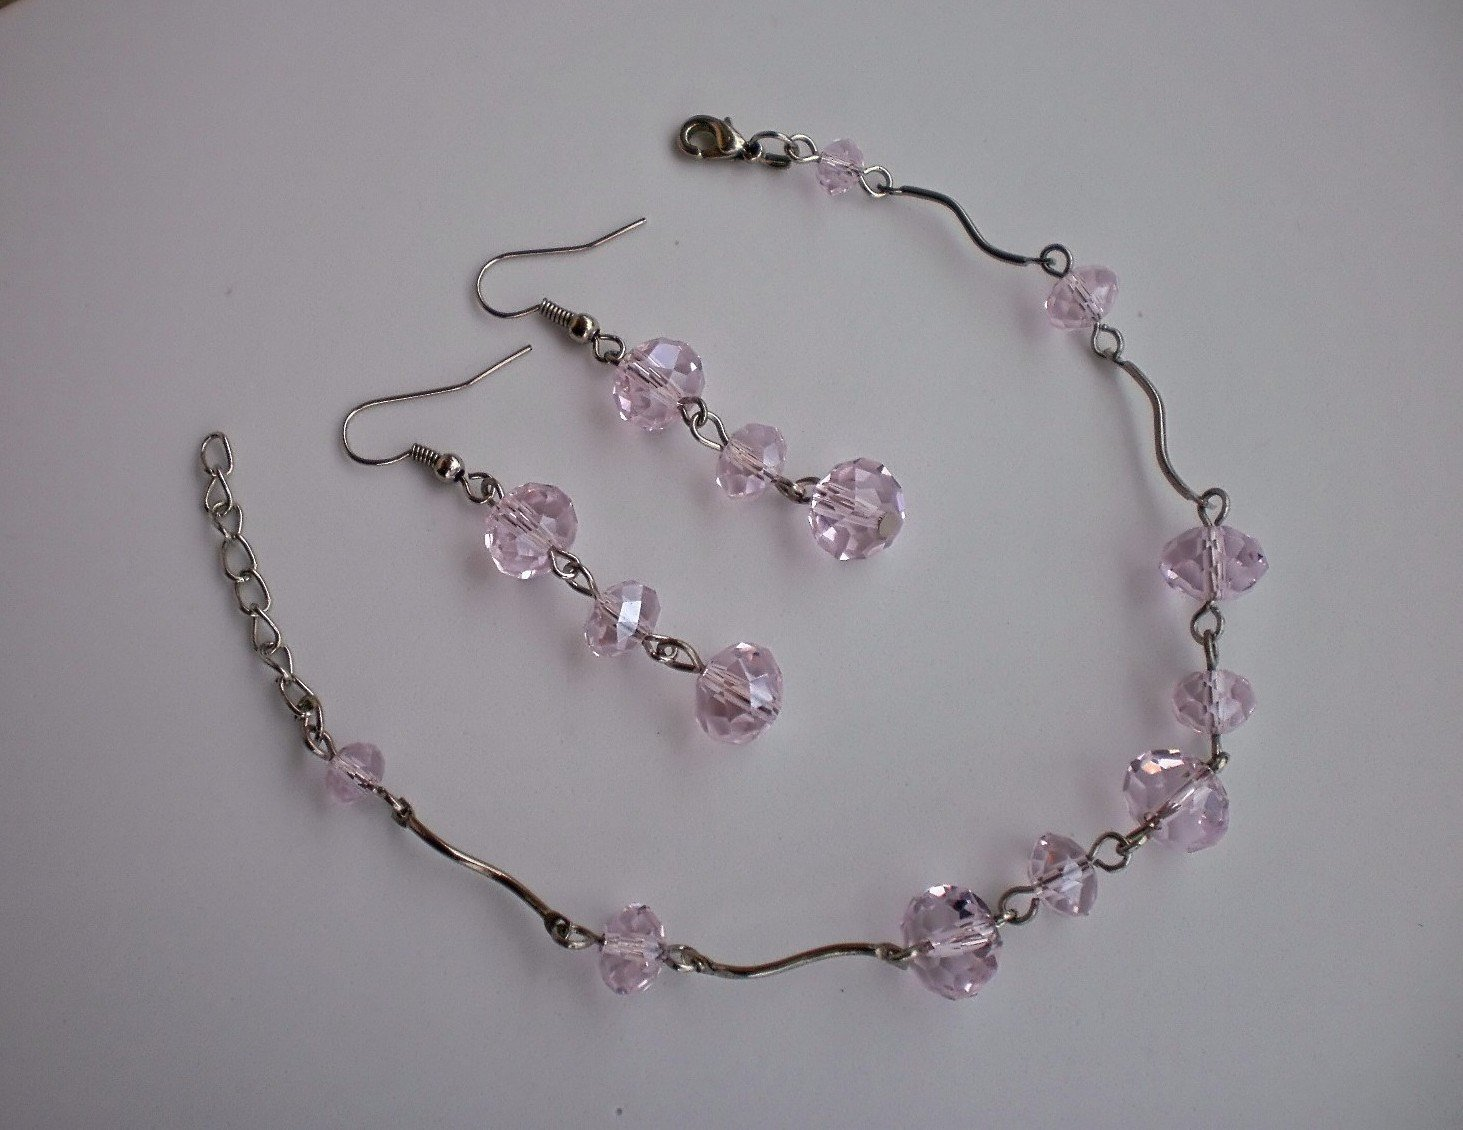 """Chining Crystals Beaded """"Candy-floss"""" Light Pink Rose Bracelet & Earrings Handcrafted Jewelry"""